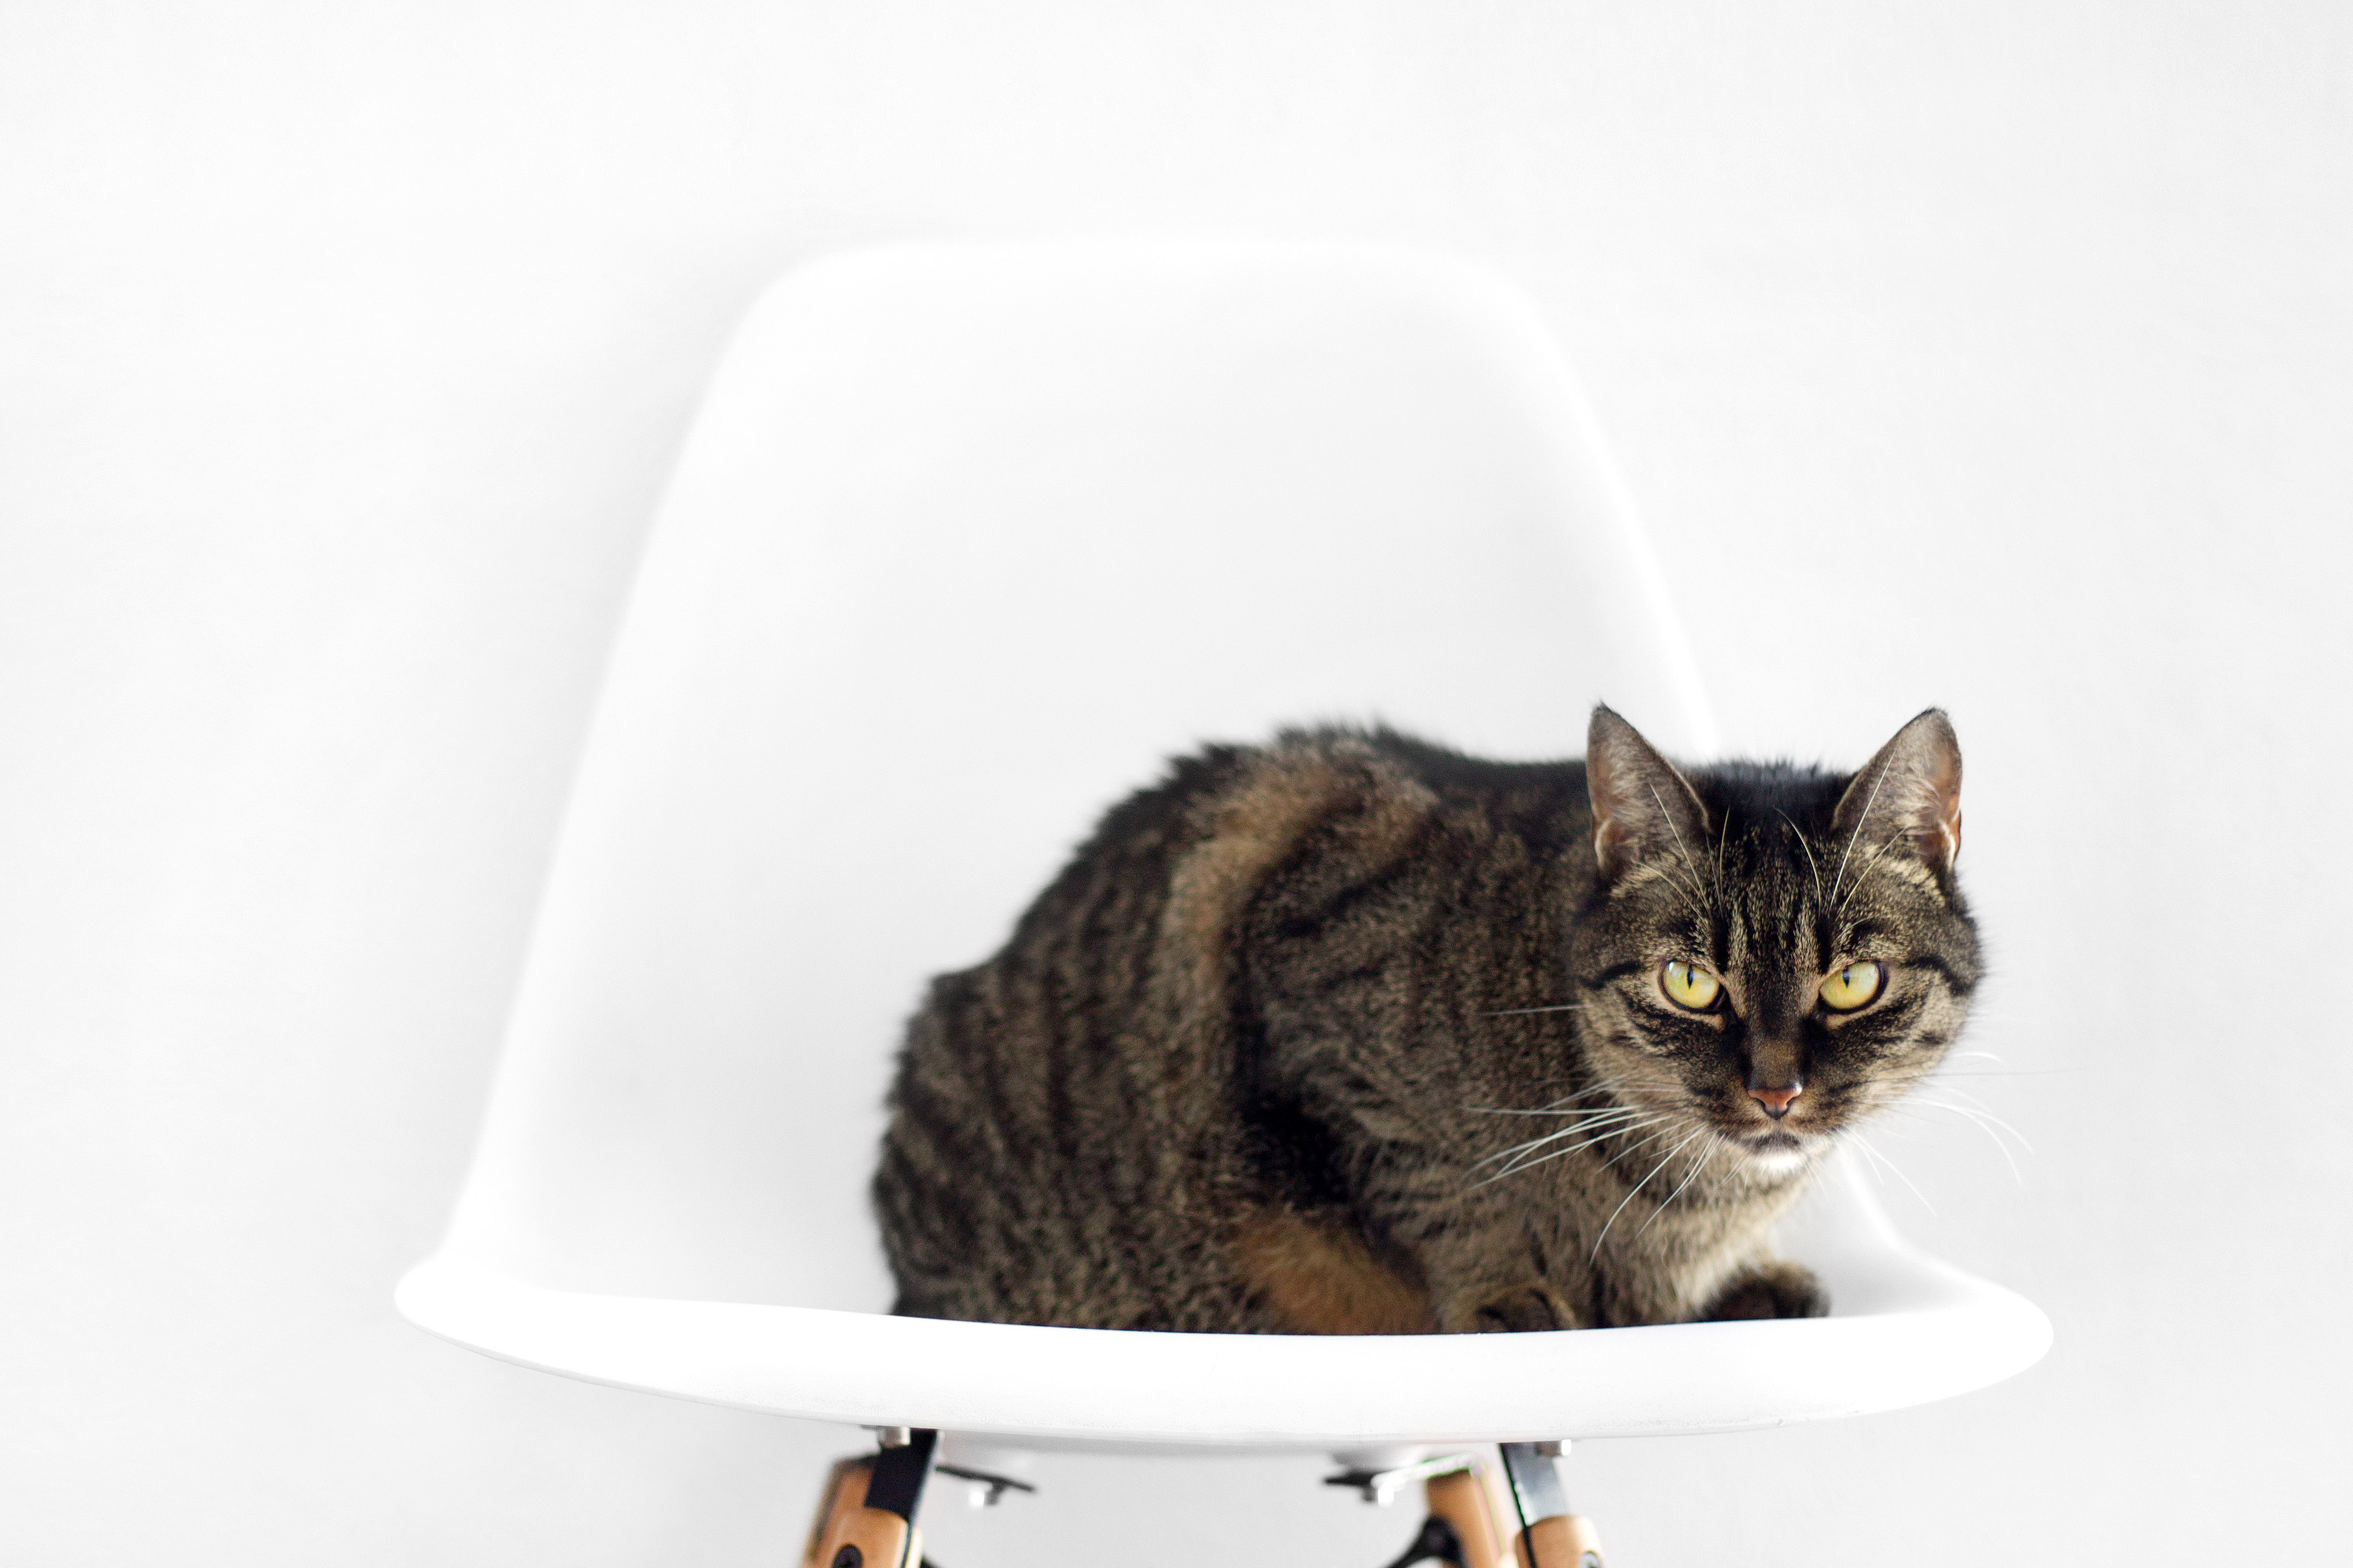 Cat sitting on chair image  Free stock photo  Public